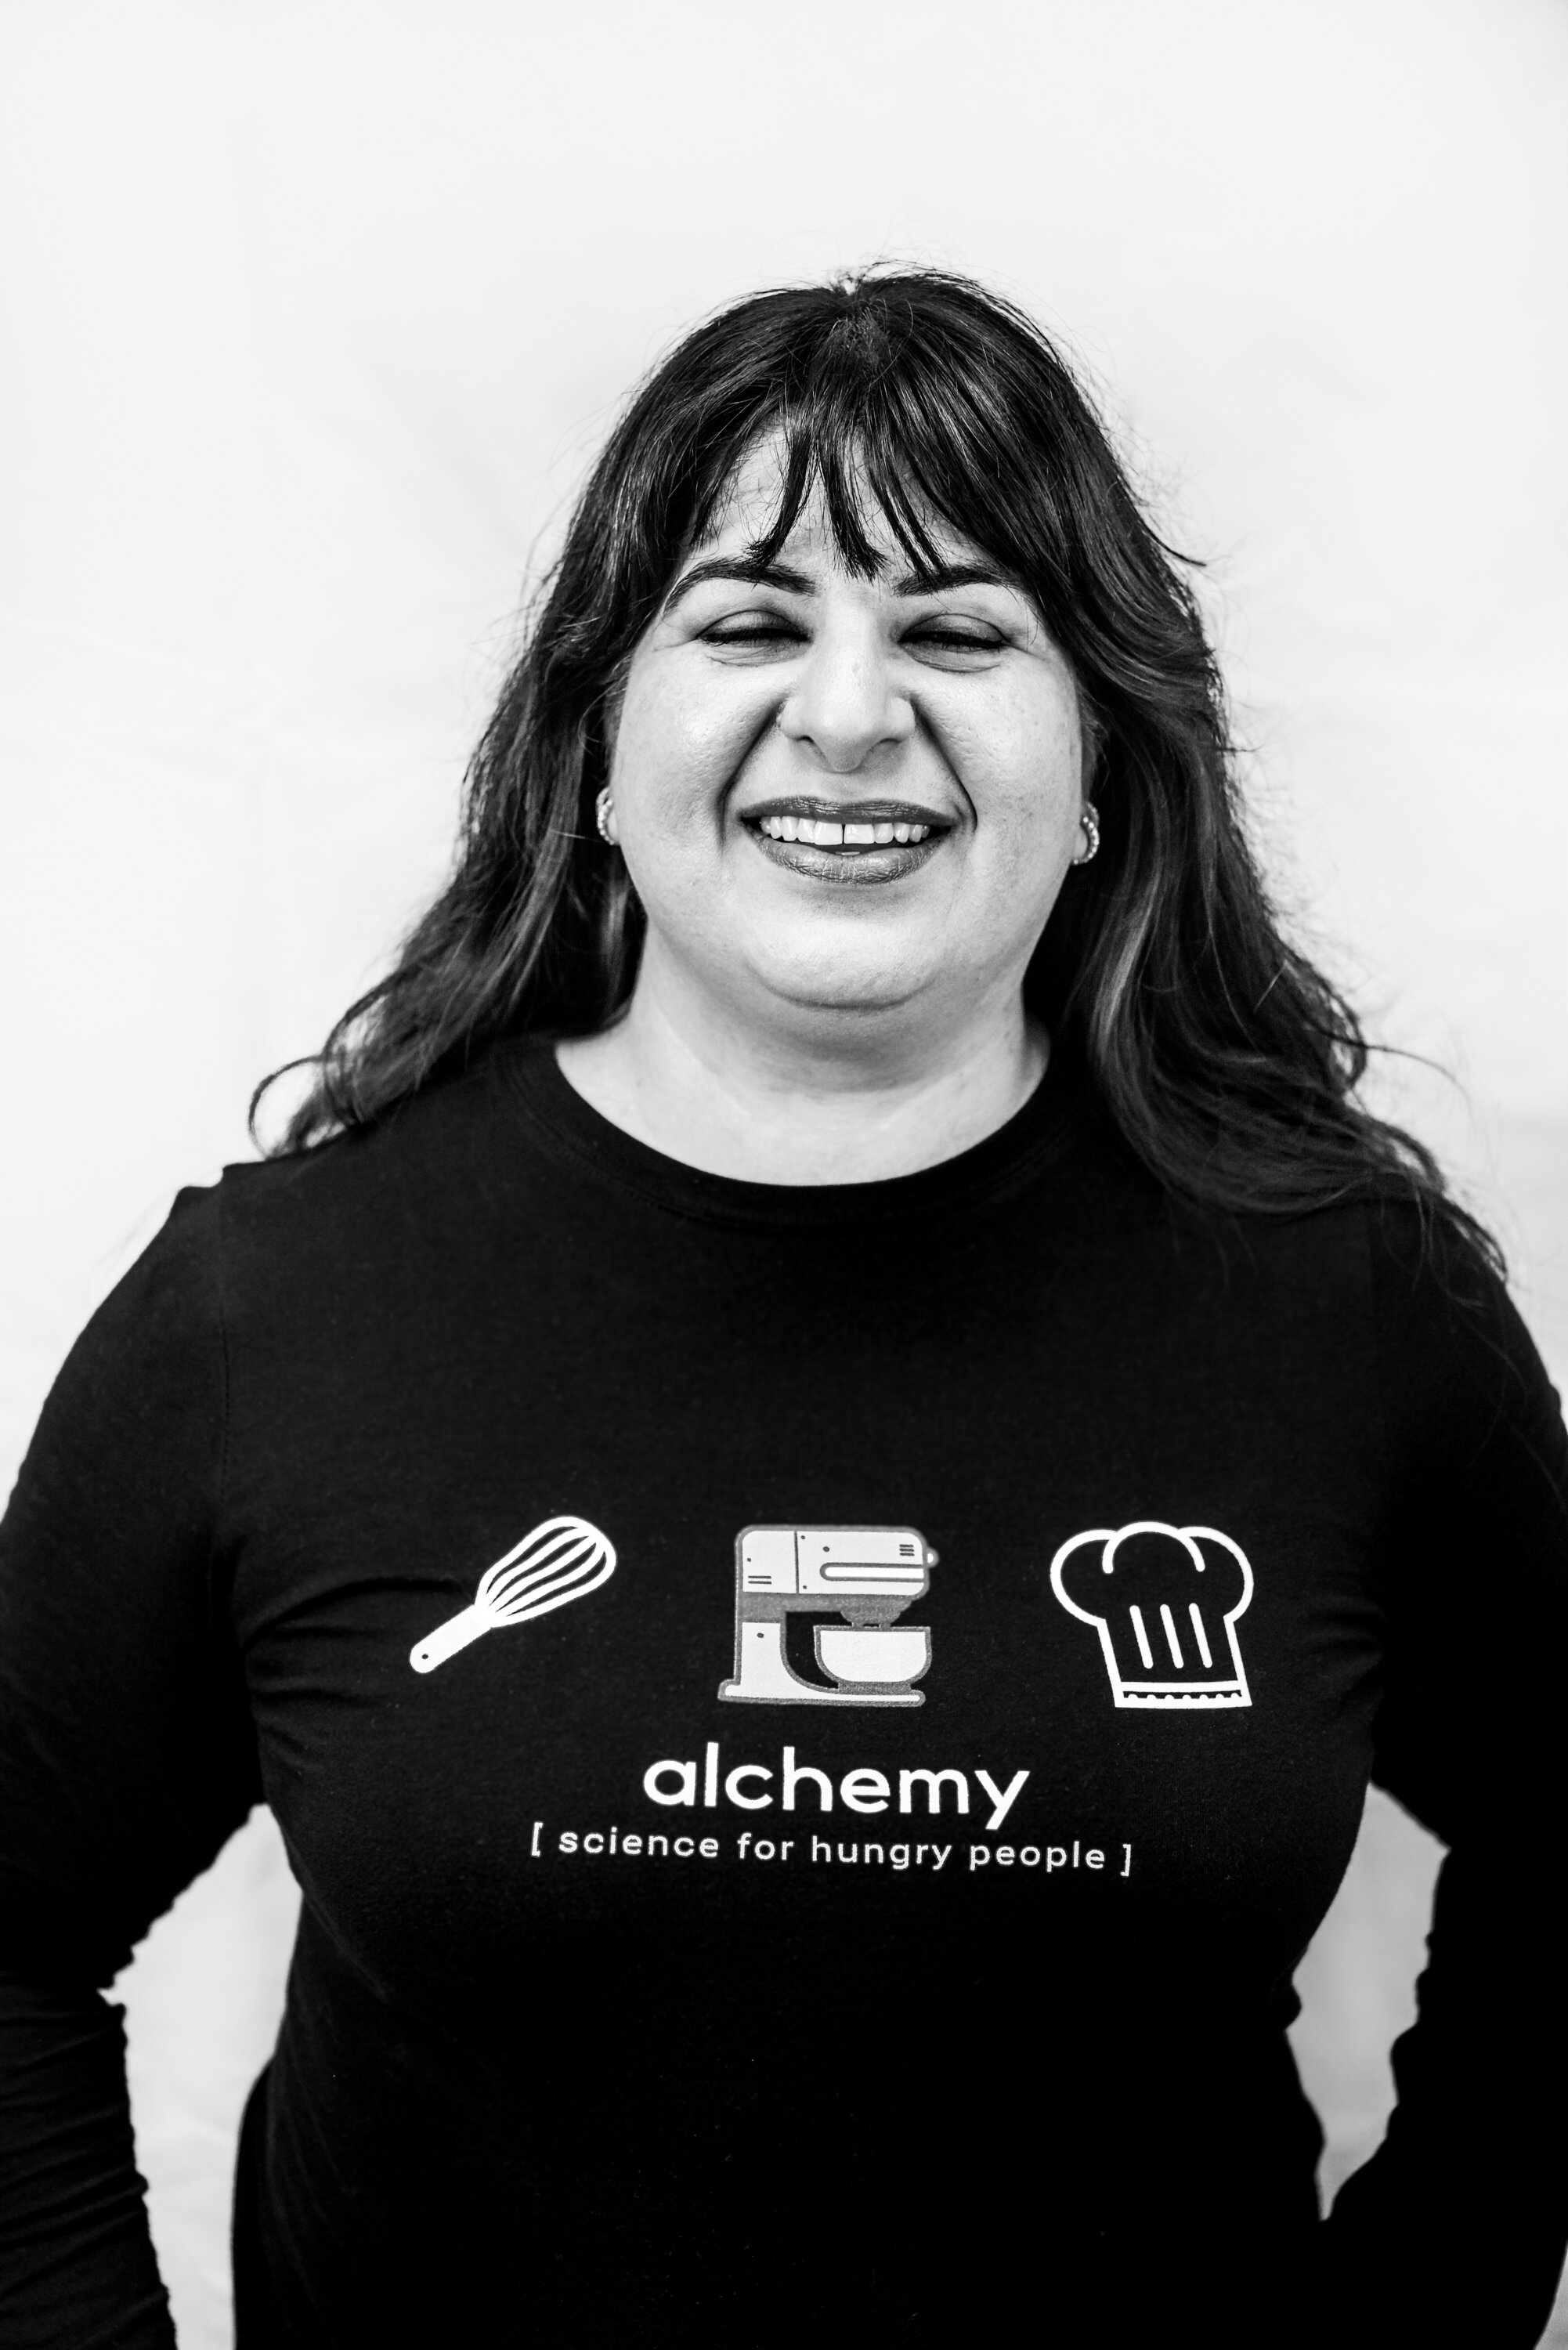 Preeti Waas, owner and baker of Sugar & Spice in Raleigh, talks about building a kitchen to meet her needs and serve the community of micro bakeries in Raleigh. Photo by Megan Crist.